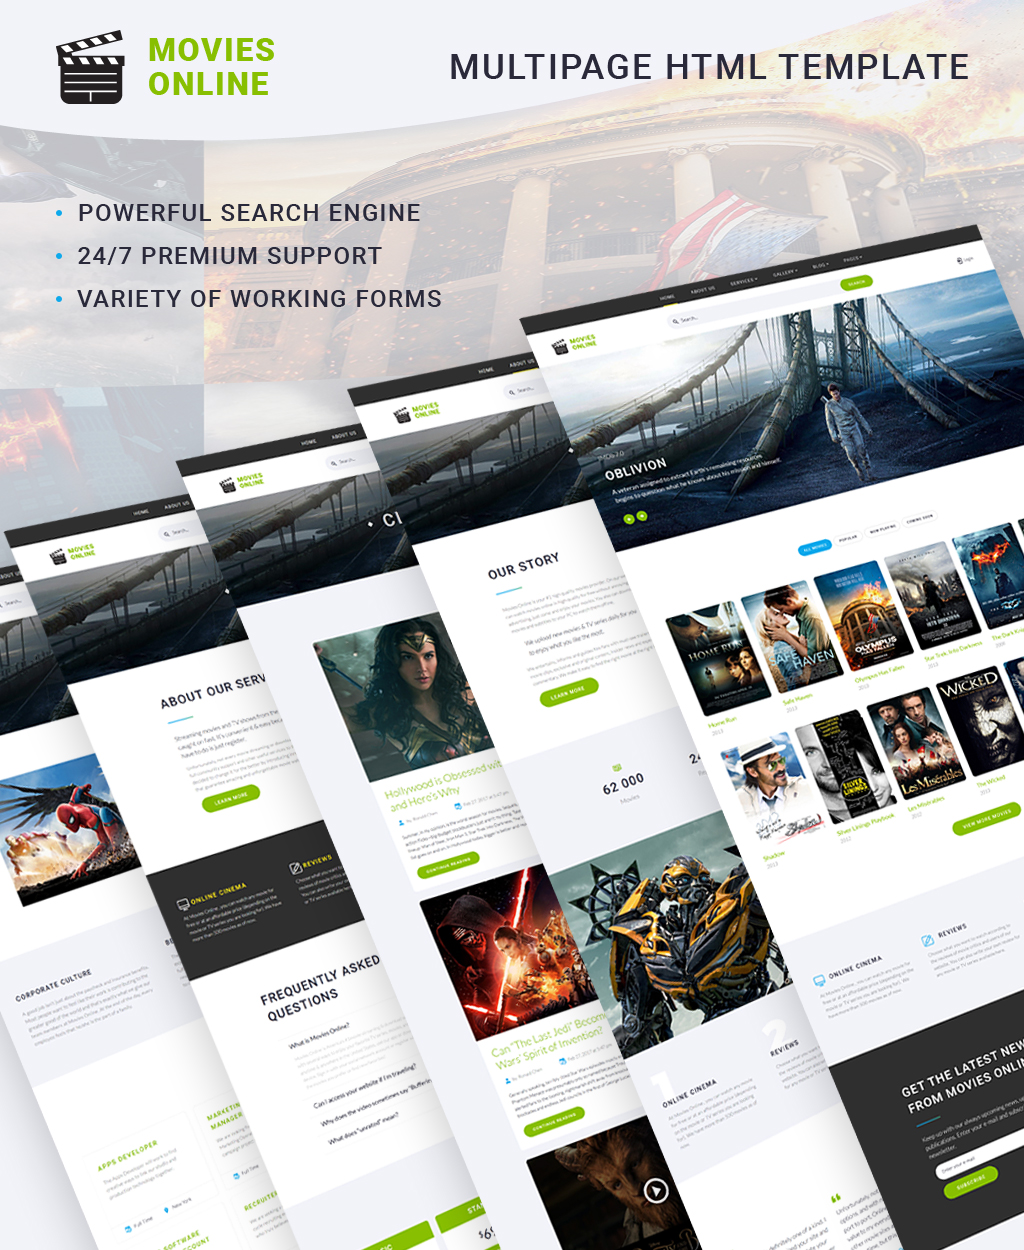 Movies Online - Multipage HTML №64434